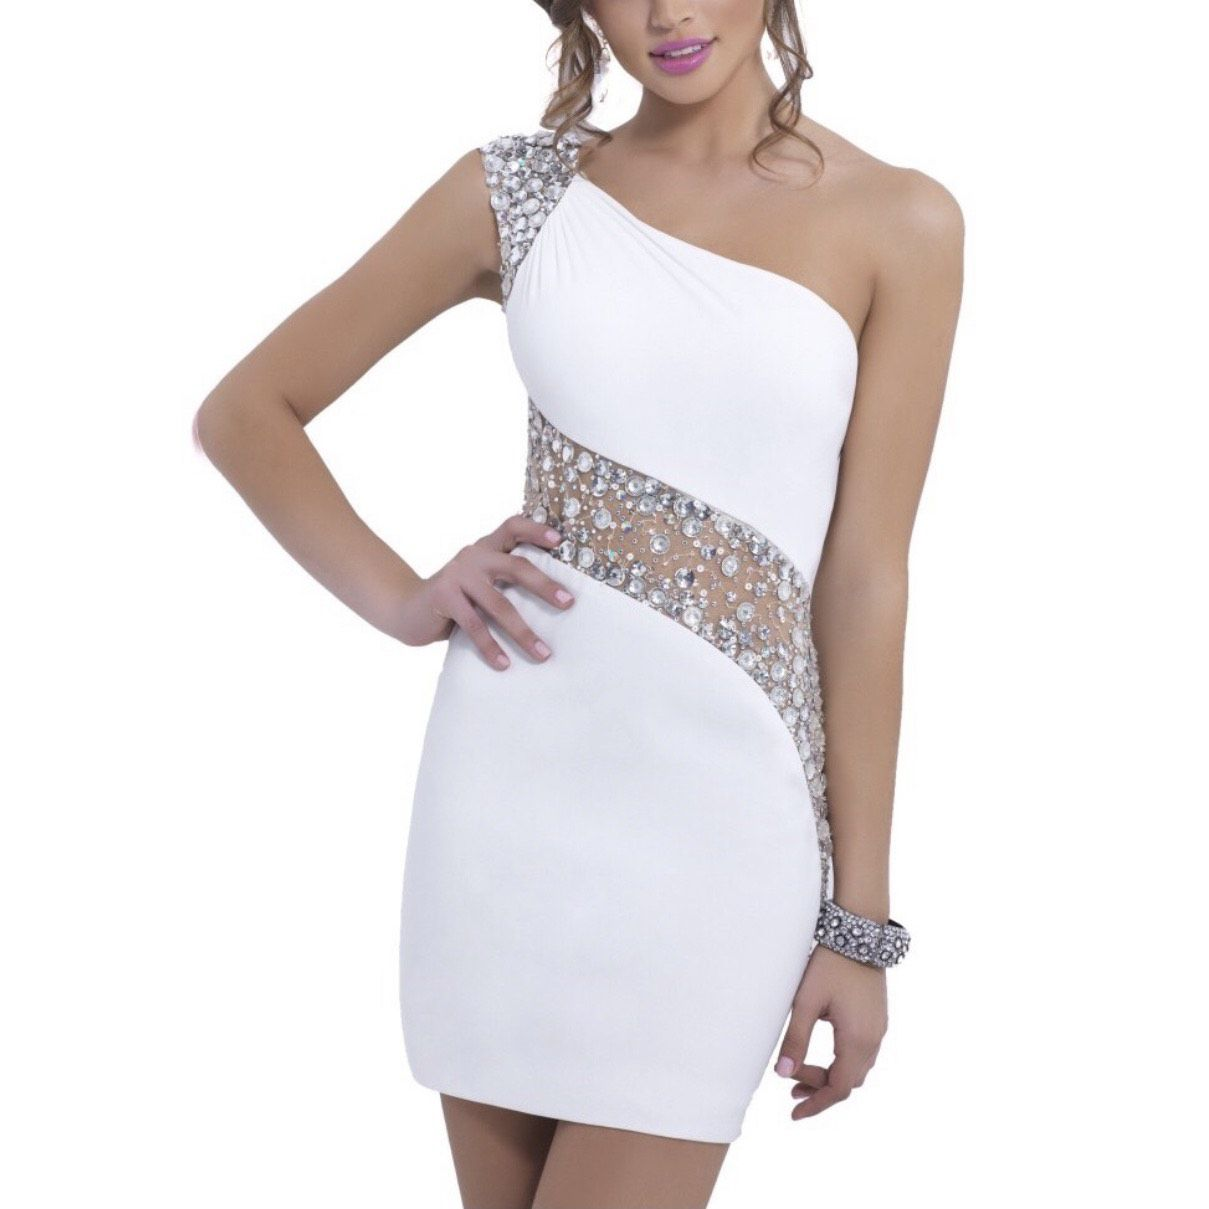 Blush White Size 2 One Shoulder Party Cocktail Dress on Queenly